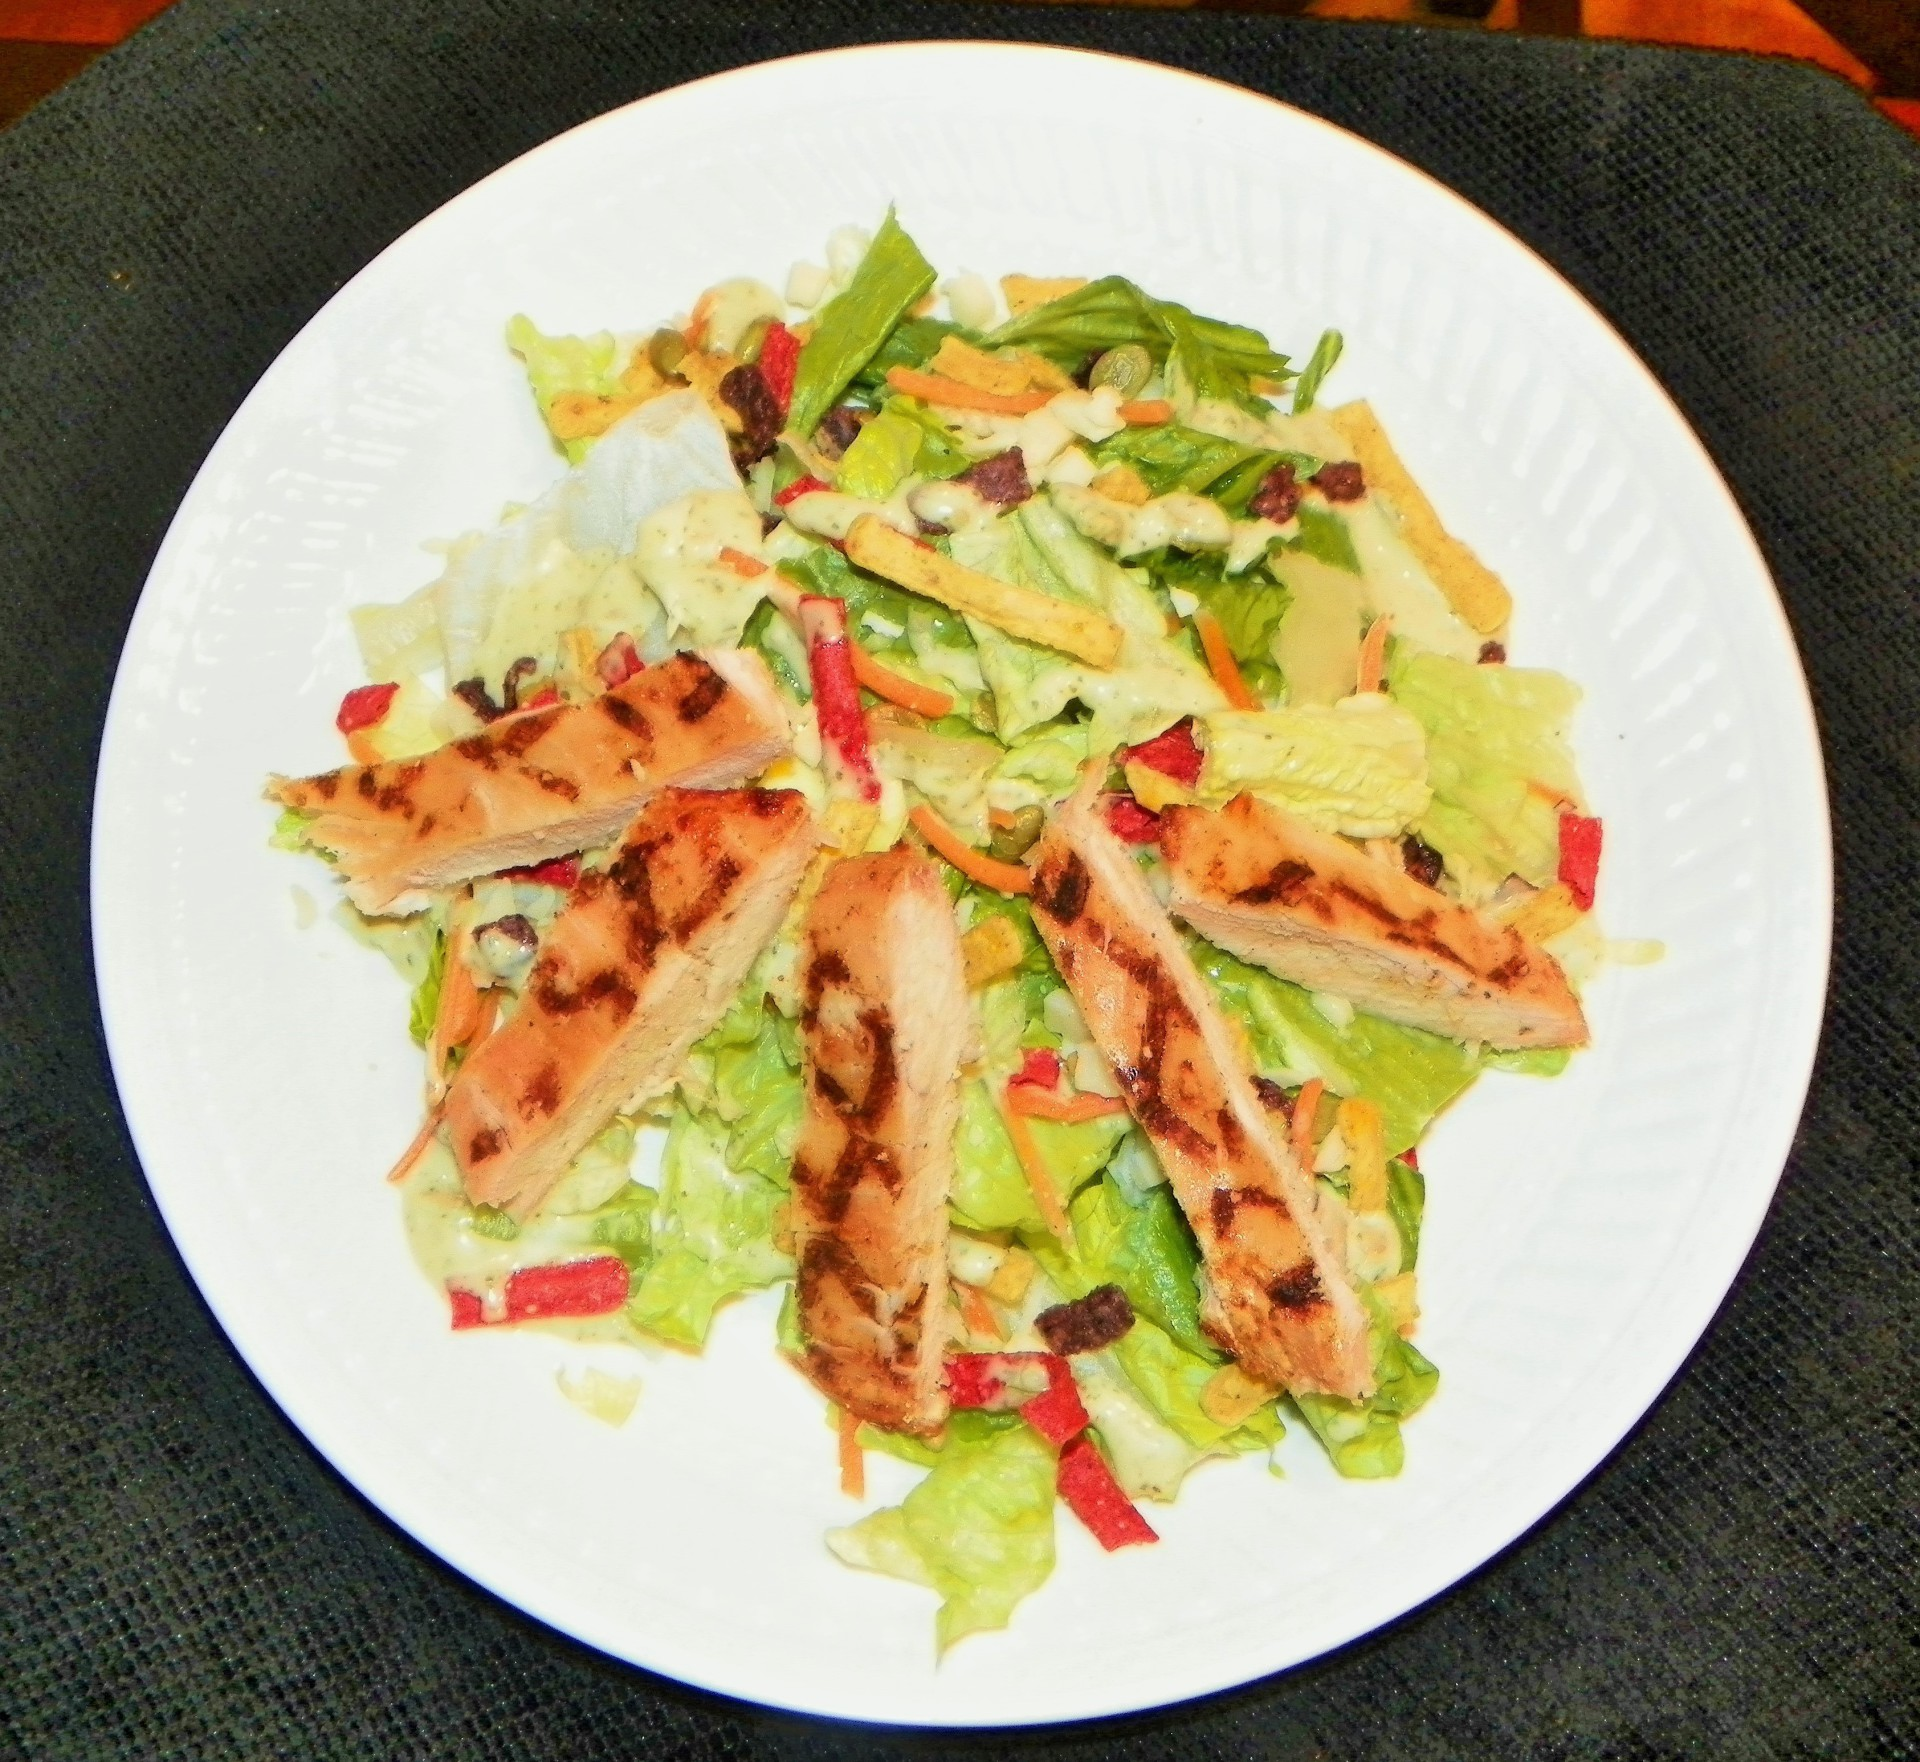 Healthy Eating! Grilled chicken breast salad  topped with a cilantro lime dressing!